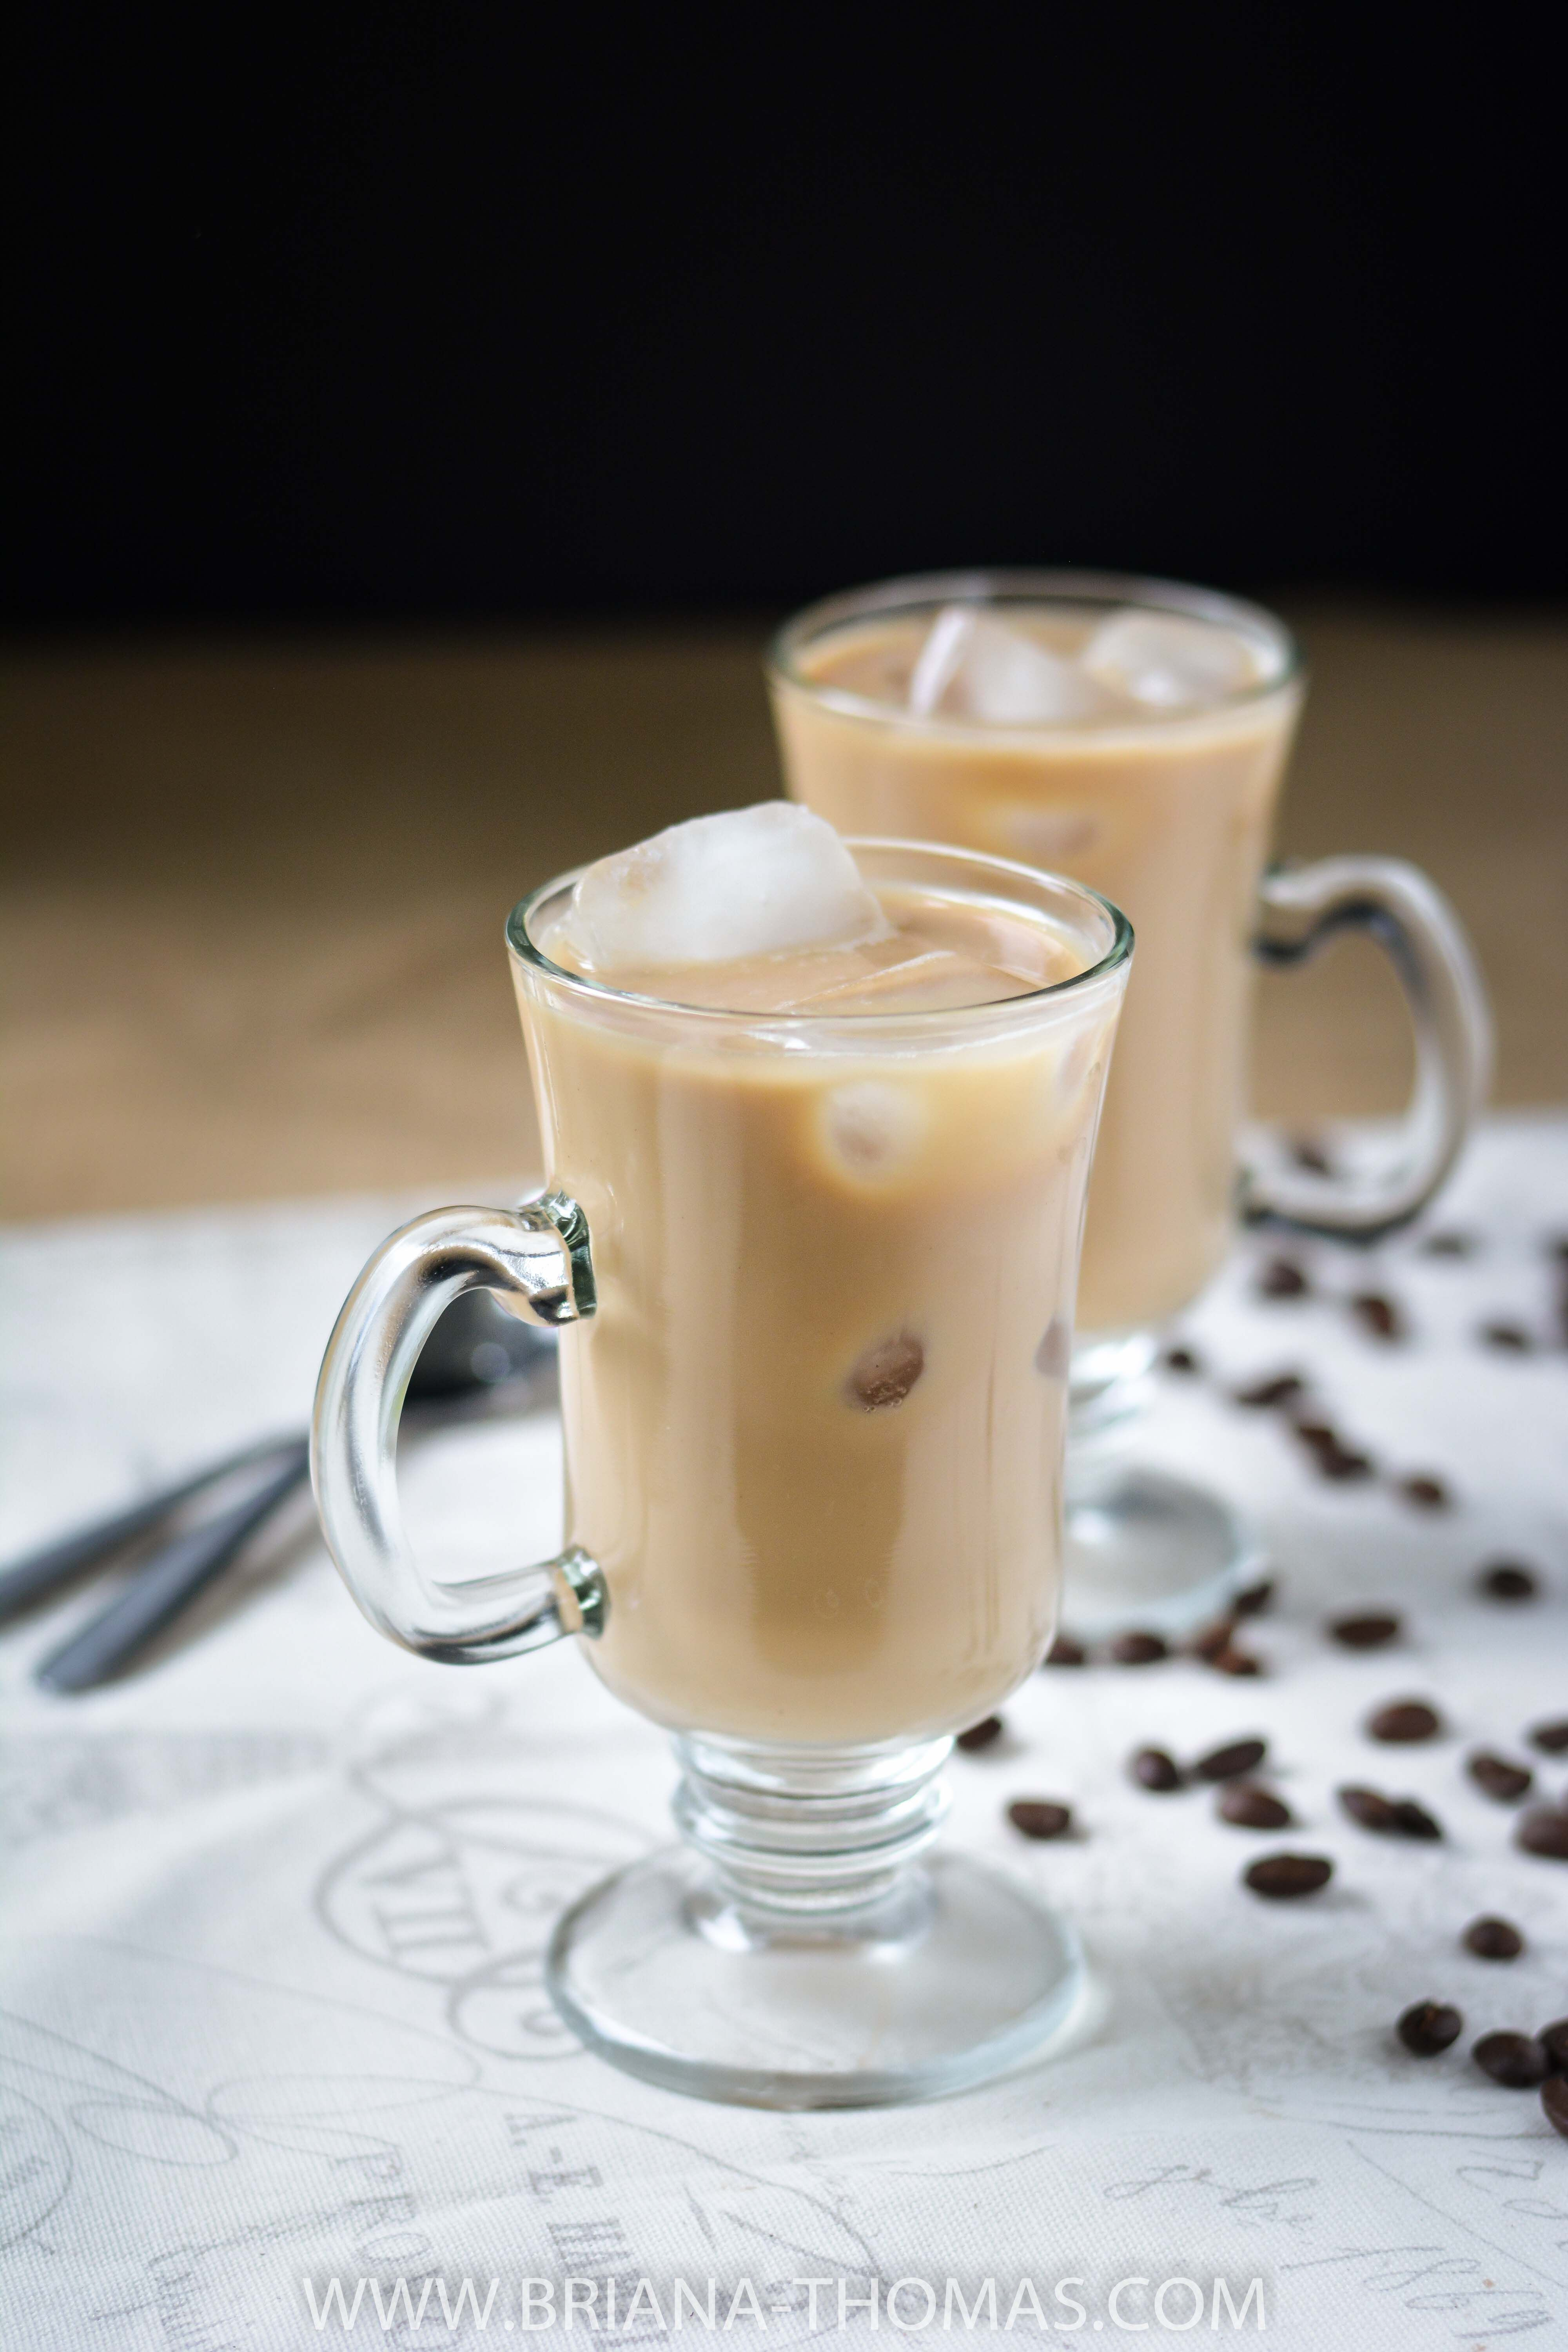 Refrigerator Iced Coffee Recipe Sugar free, Coffee